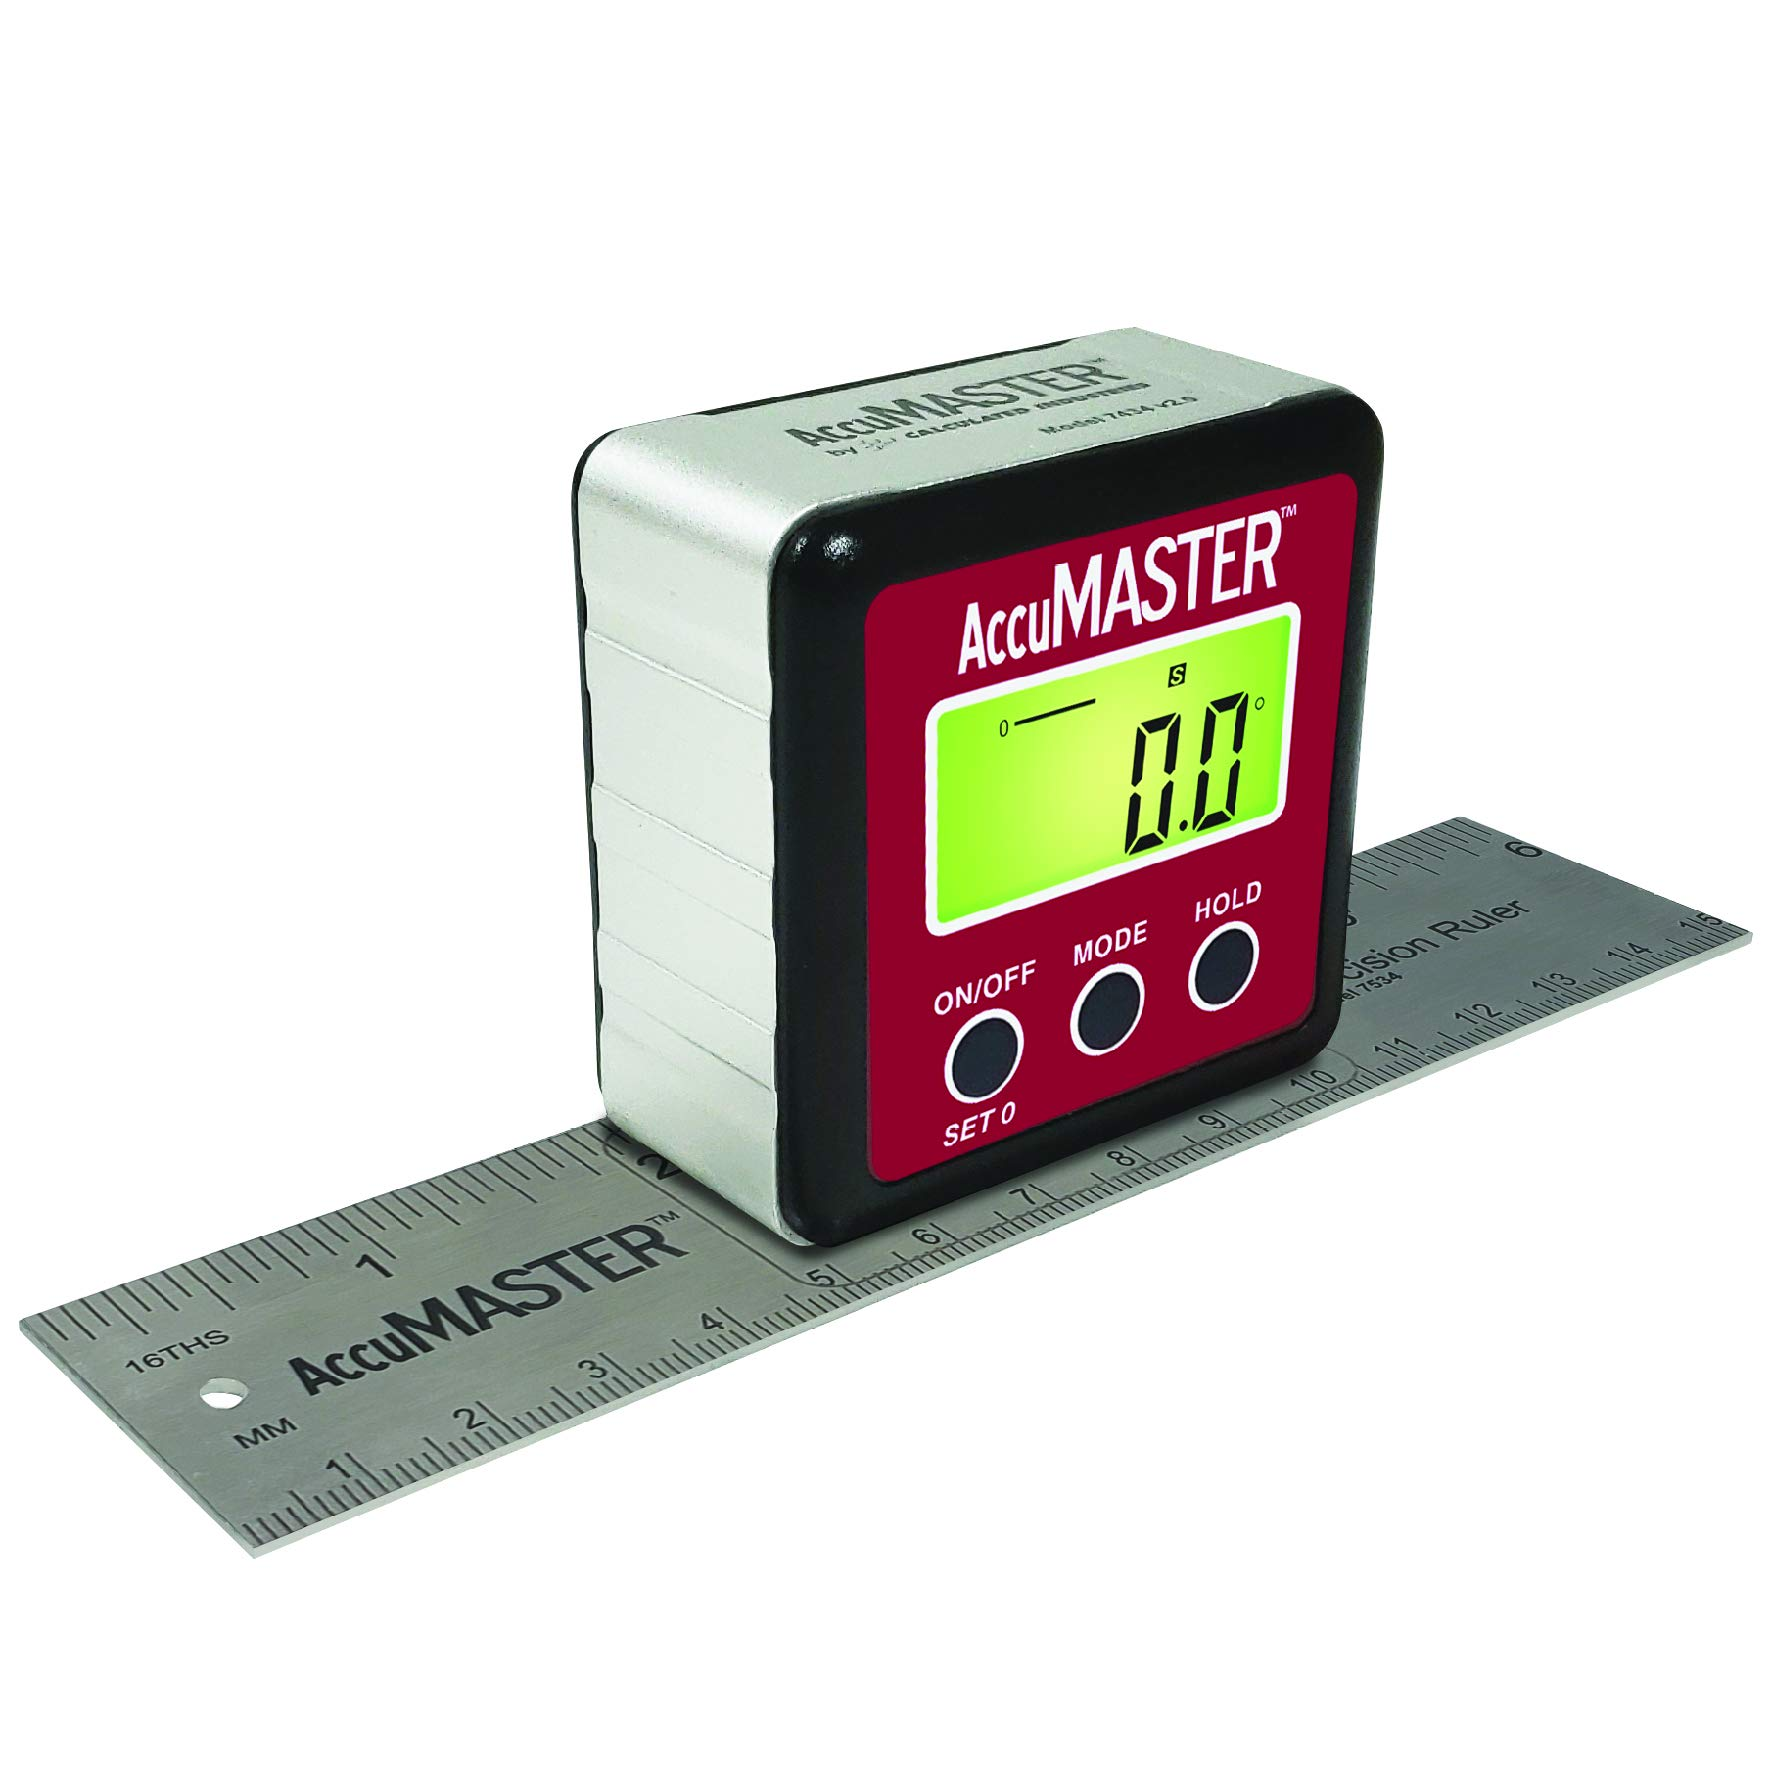 Calculated Industries 7534 AccuMASTER 2-in-1 Magnetic Digital Level and Angle Finder   Inclinometer   Bevel Gauge, Latest MEMs Technology, IP54 Dust and Water Resistant   Bonus 6'' Precision Ruler